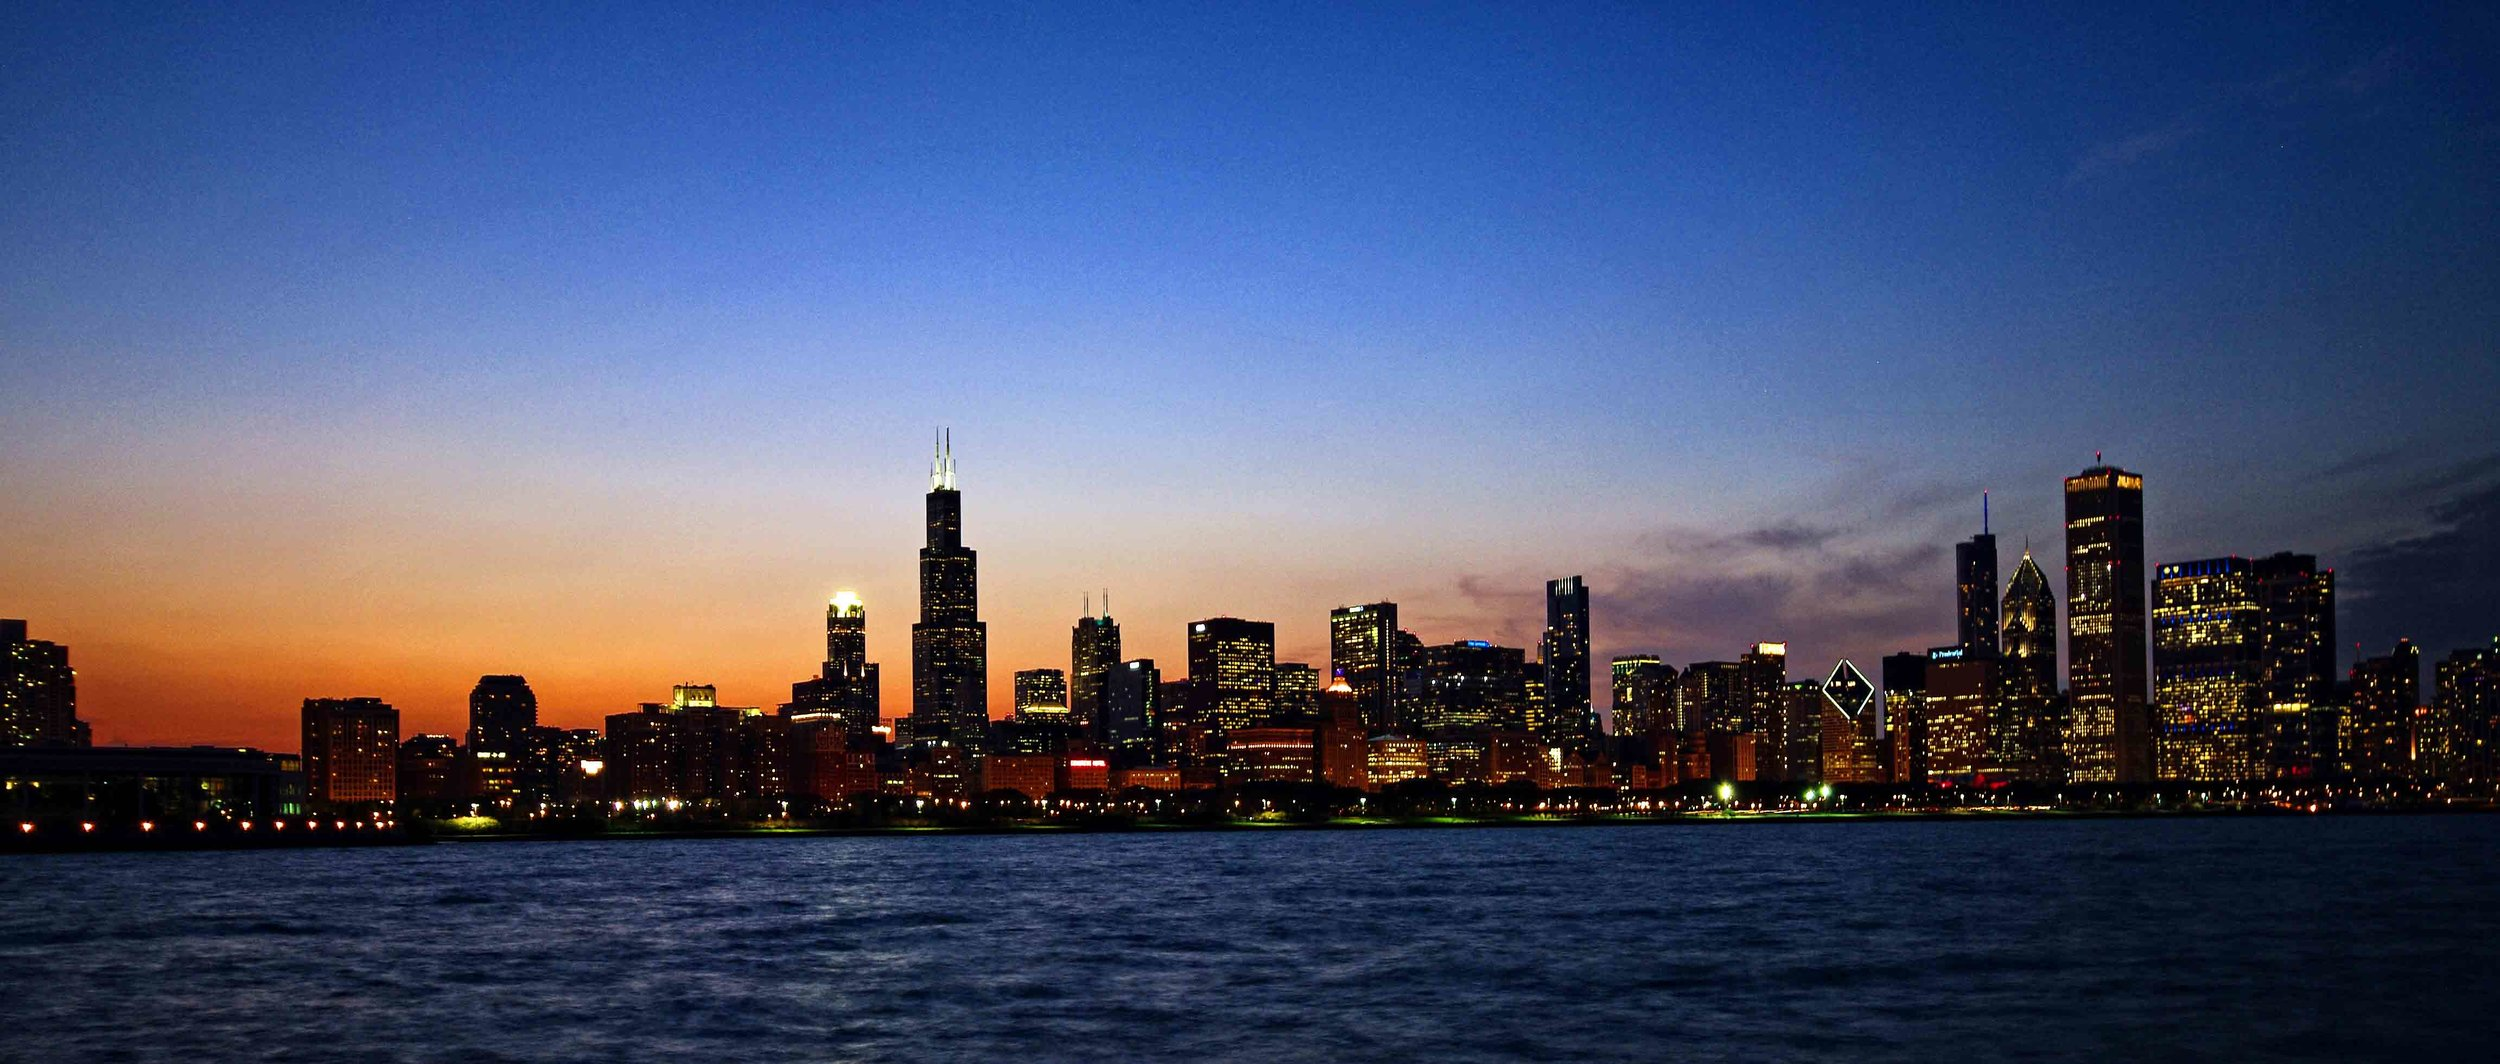 3rd place - Chicago Skyline - John Crowley